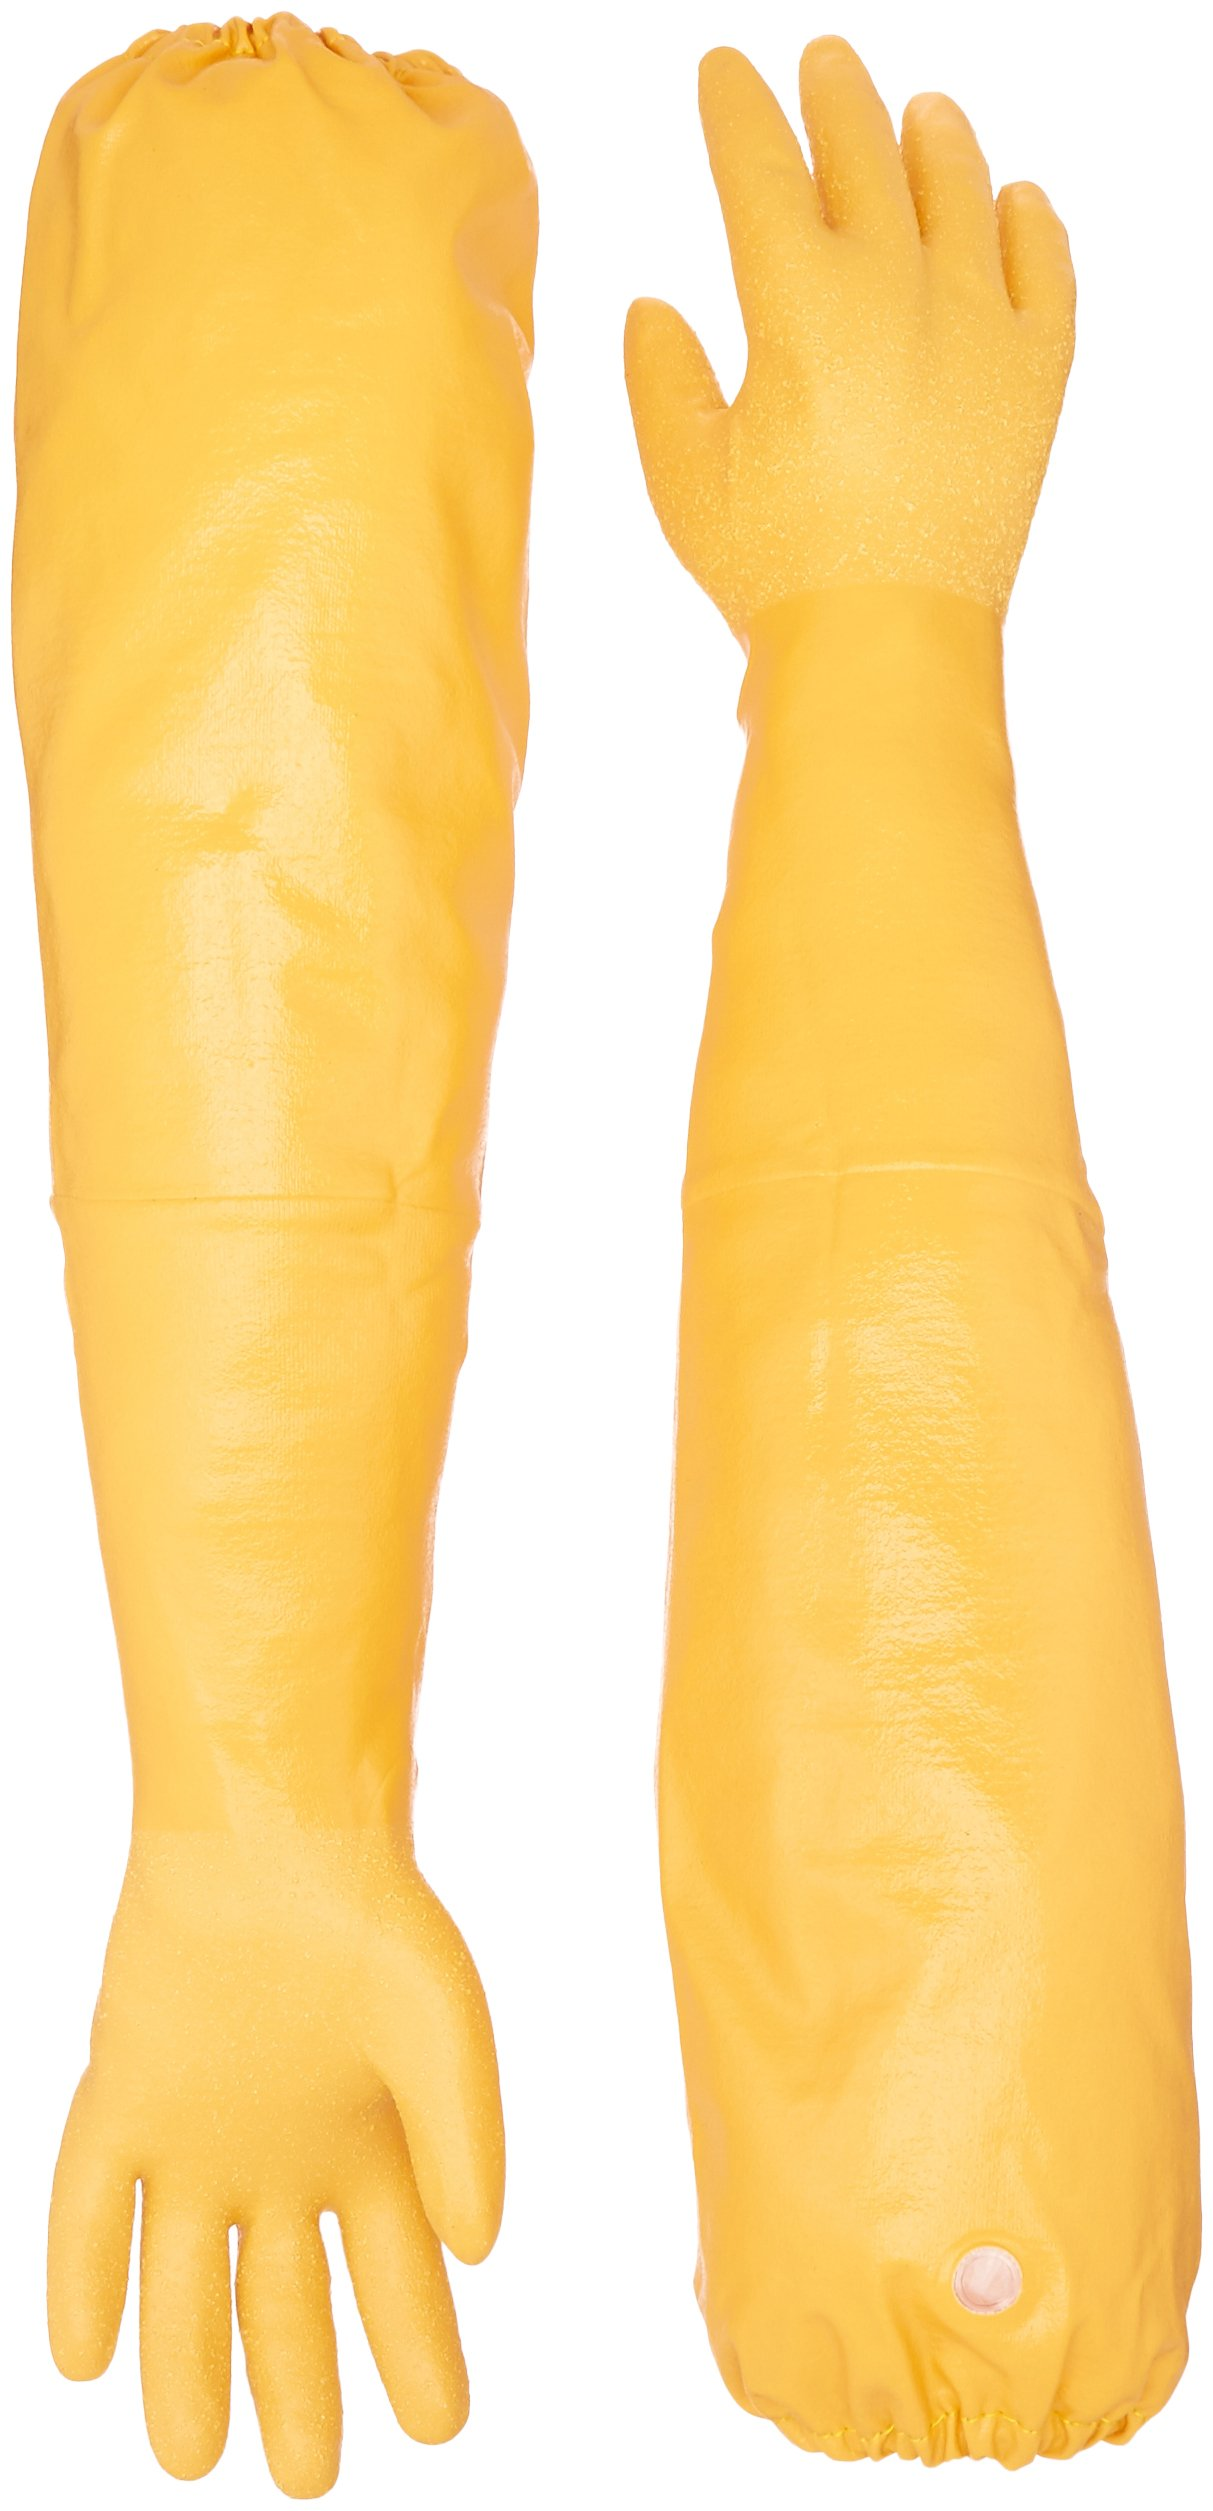 Showa Atlas 772 M Nitrile Elbow Length Chemical Resistant Gloves, 26'', Yellow